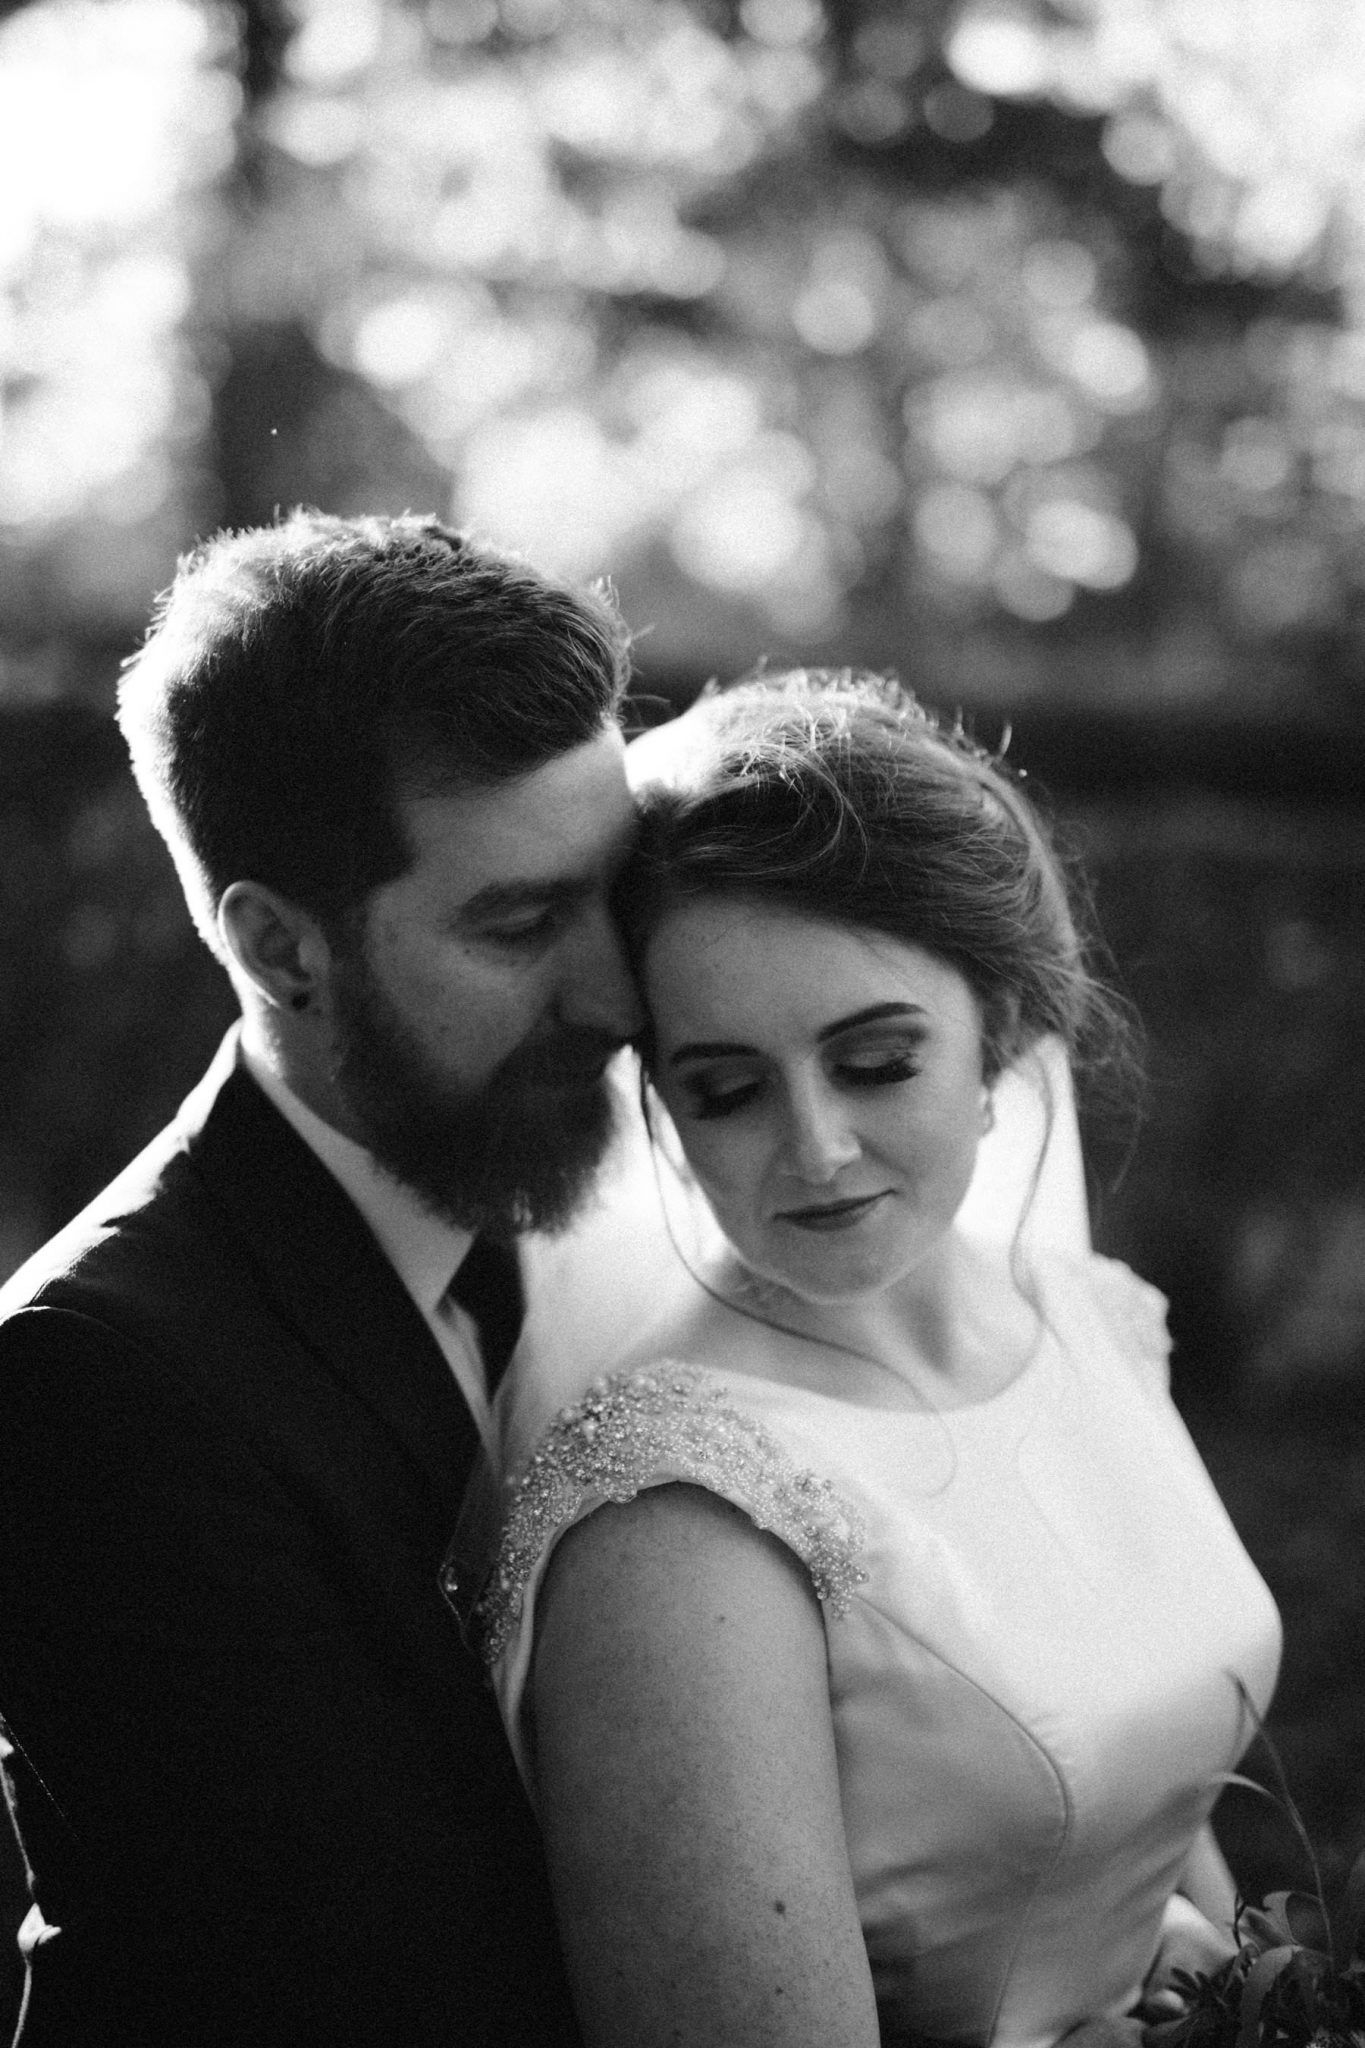 black and white wedding portrait of bride and groom ireland